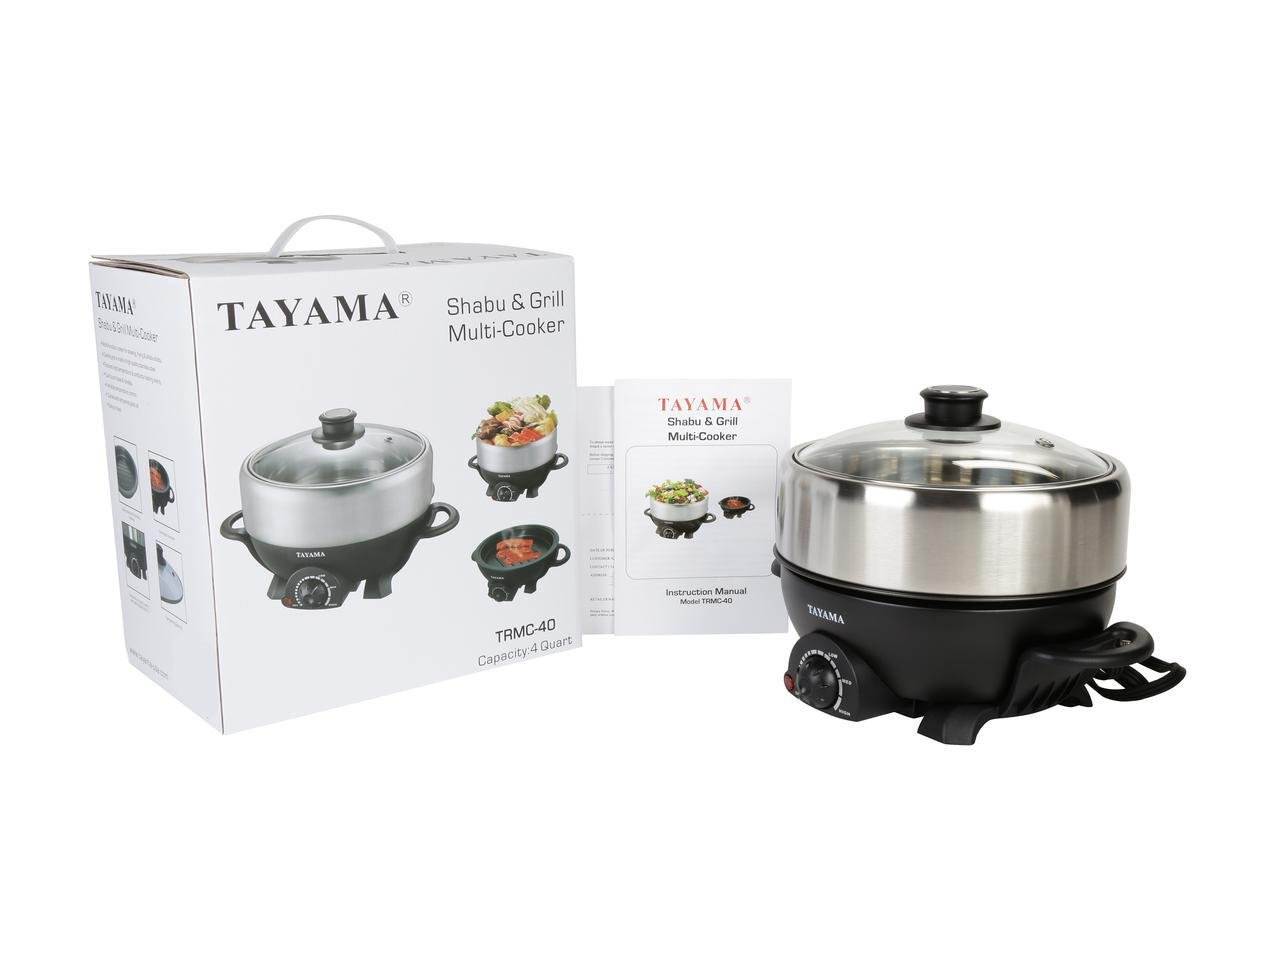 TRMC-40 Shabu and Grill Multi-Cooker, 4 quart, Black by TAYAMA (Image #9)